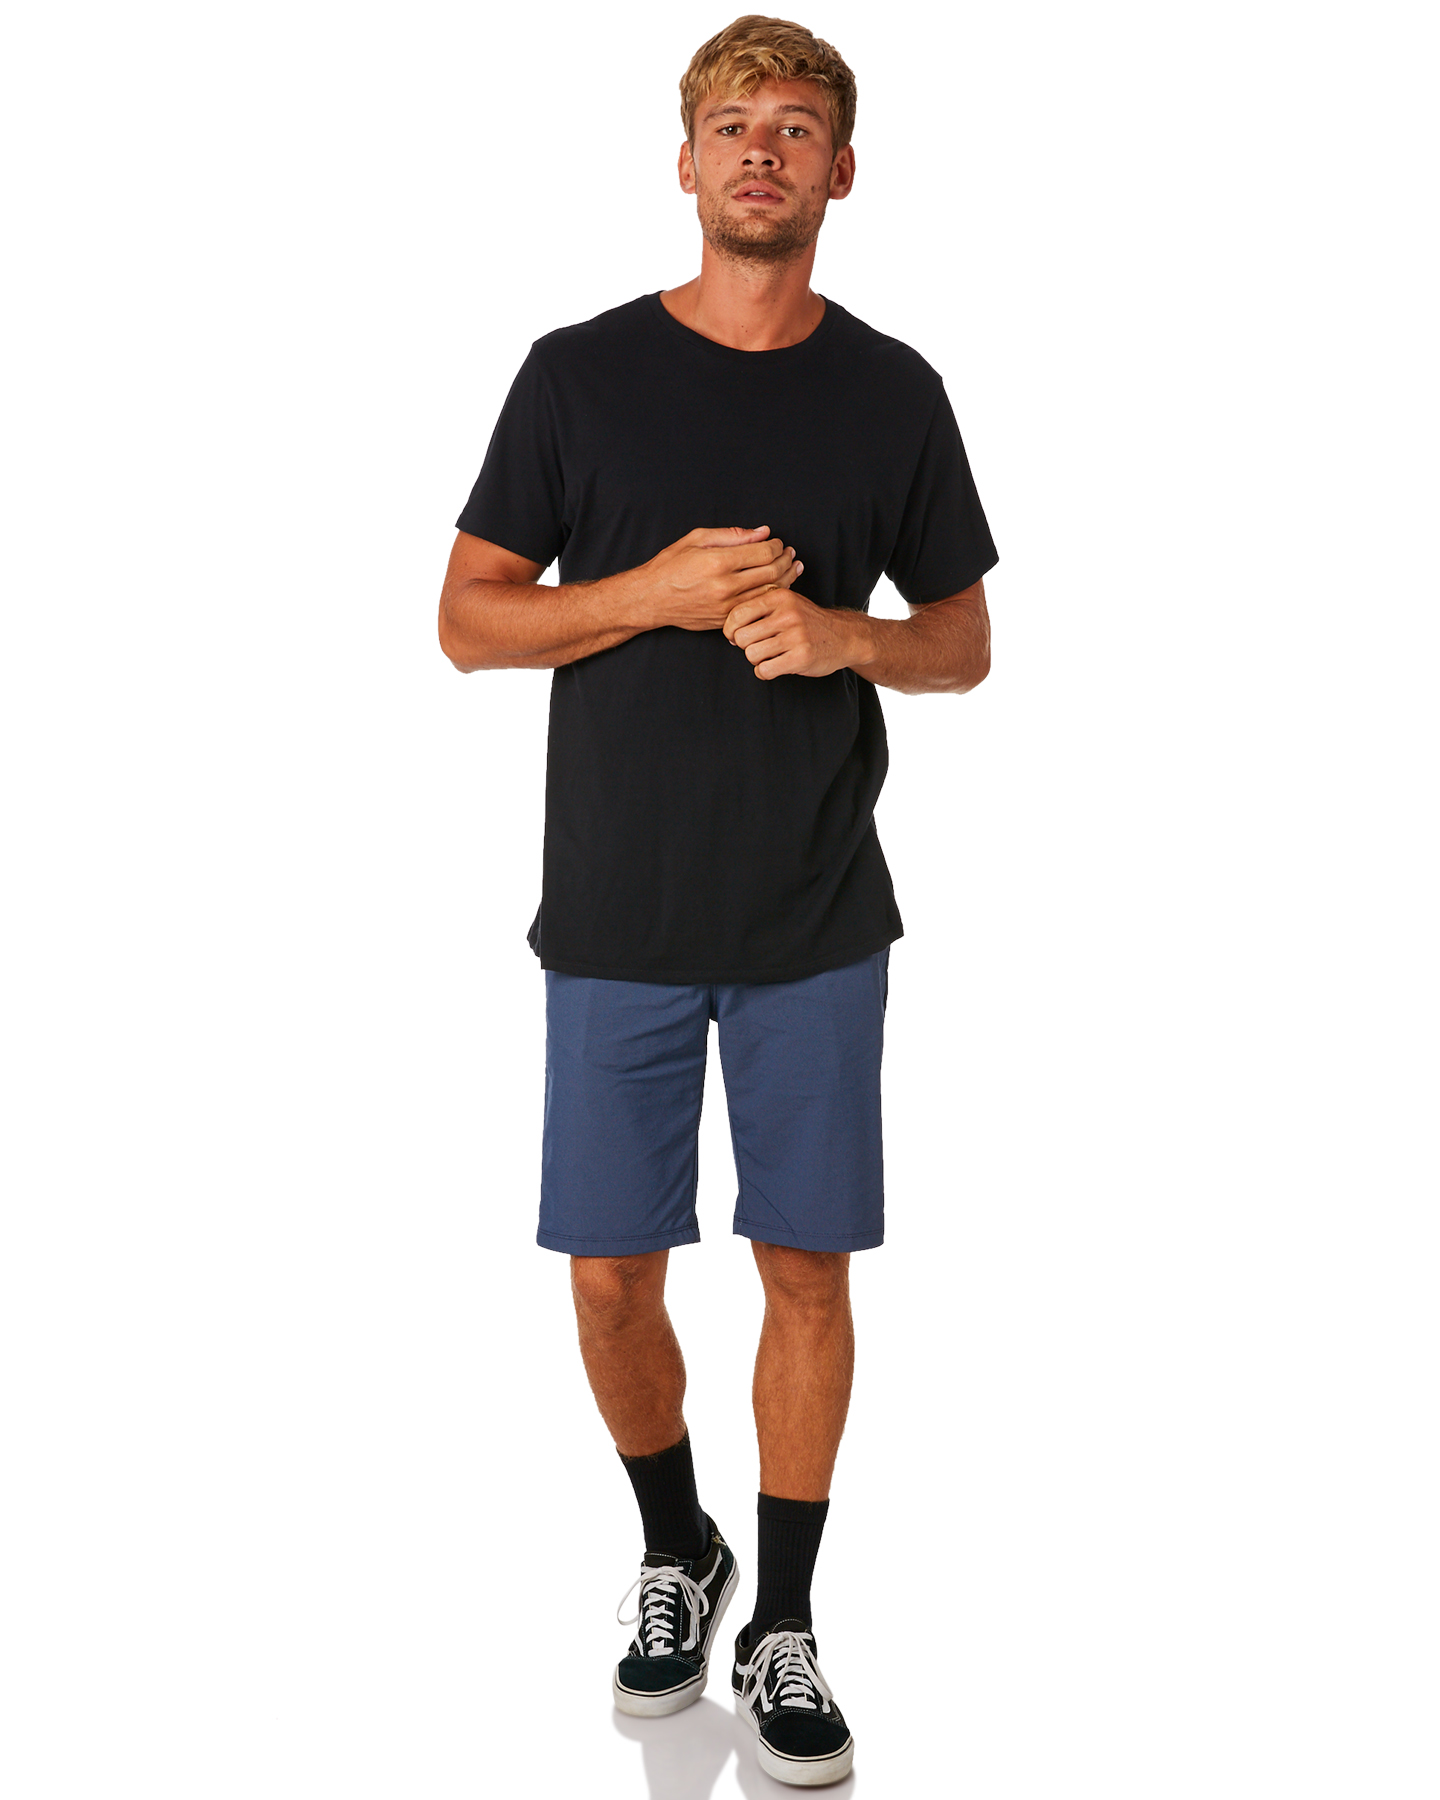 New-Hurley-Men-039-s-Dri-Fit-Chino-Short-21In-Mens-Short-Fitted-Spandex-Grey thumbnail 20